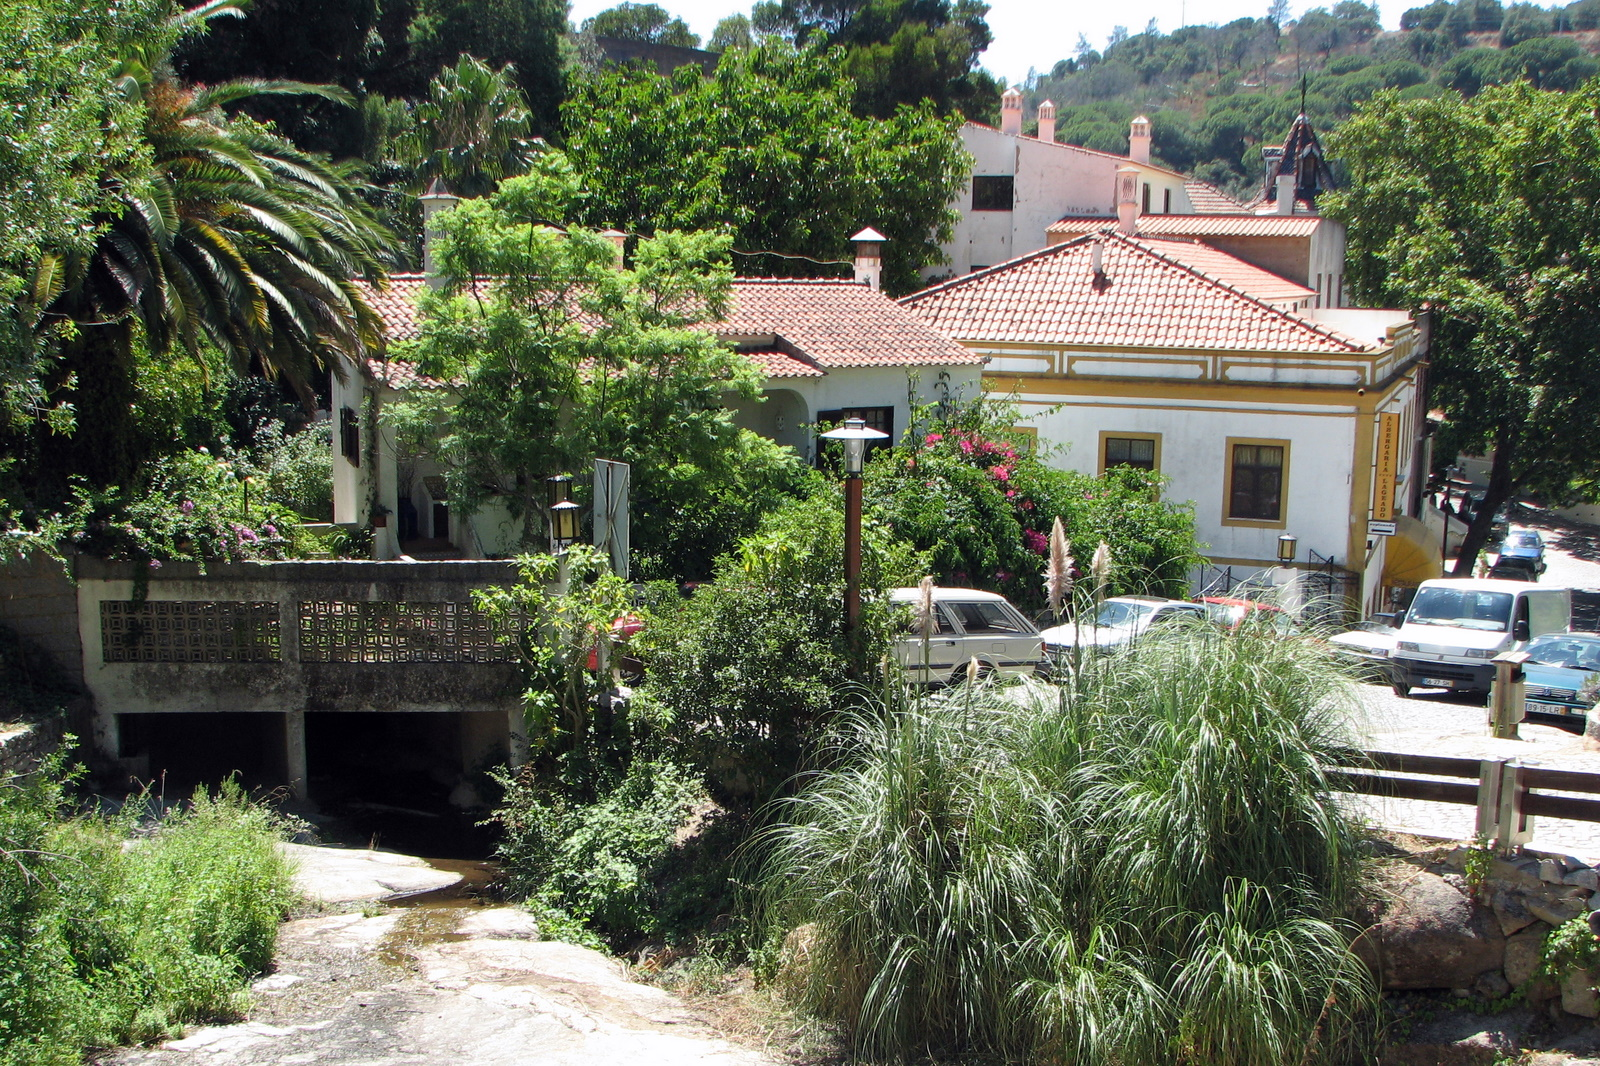 Monchique Portugal  City new picture : Caldas de Monchique The Algarve, Portugal 1387663183 ...